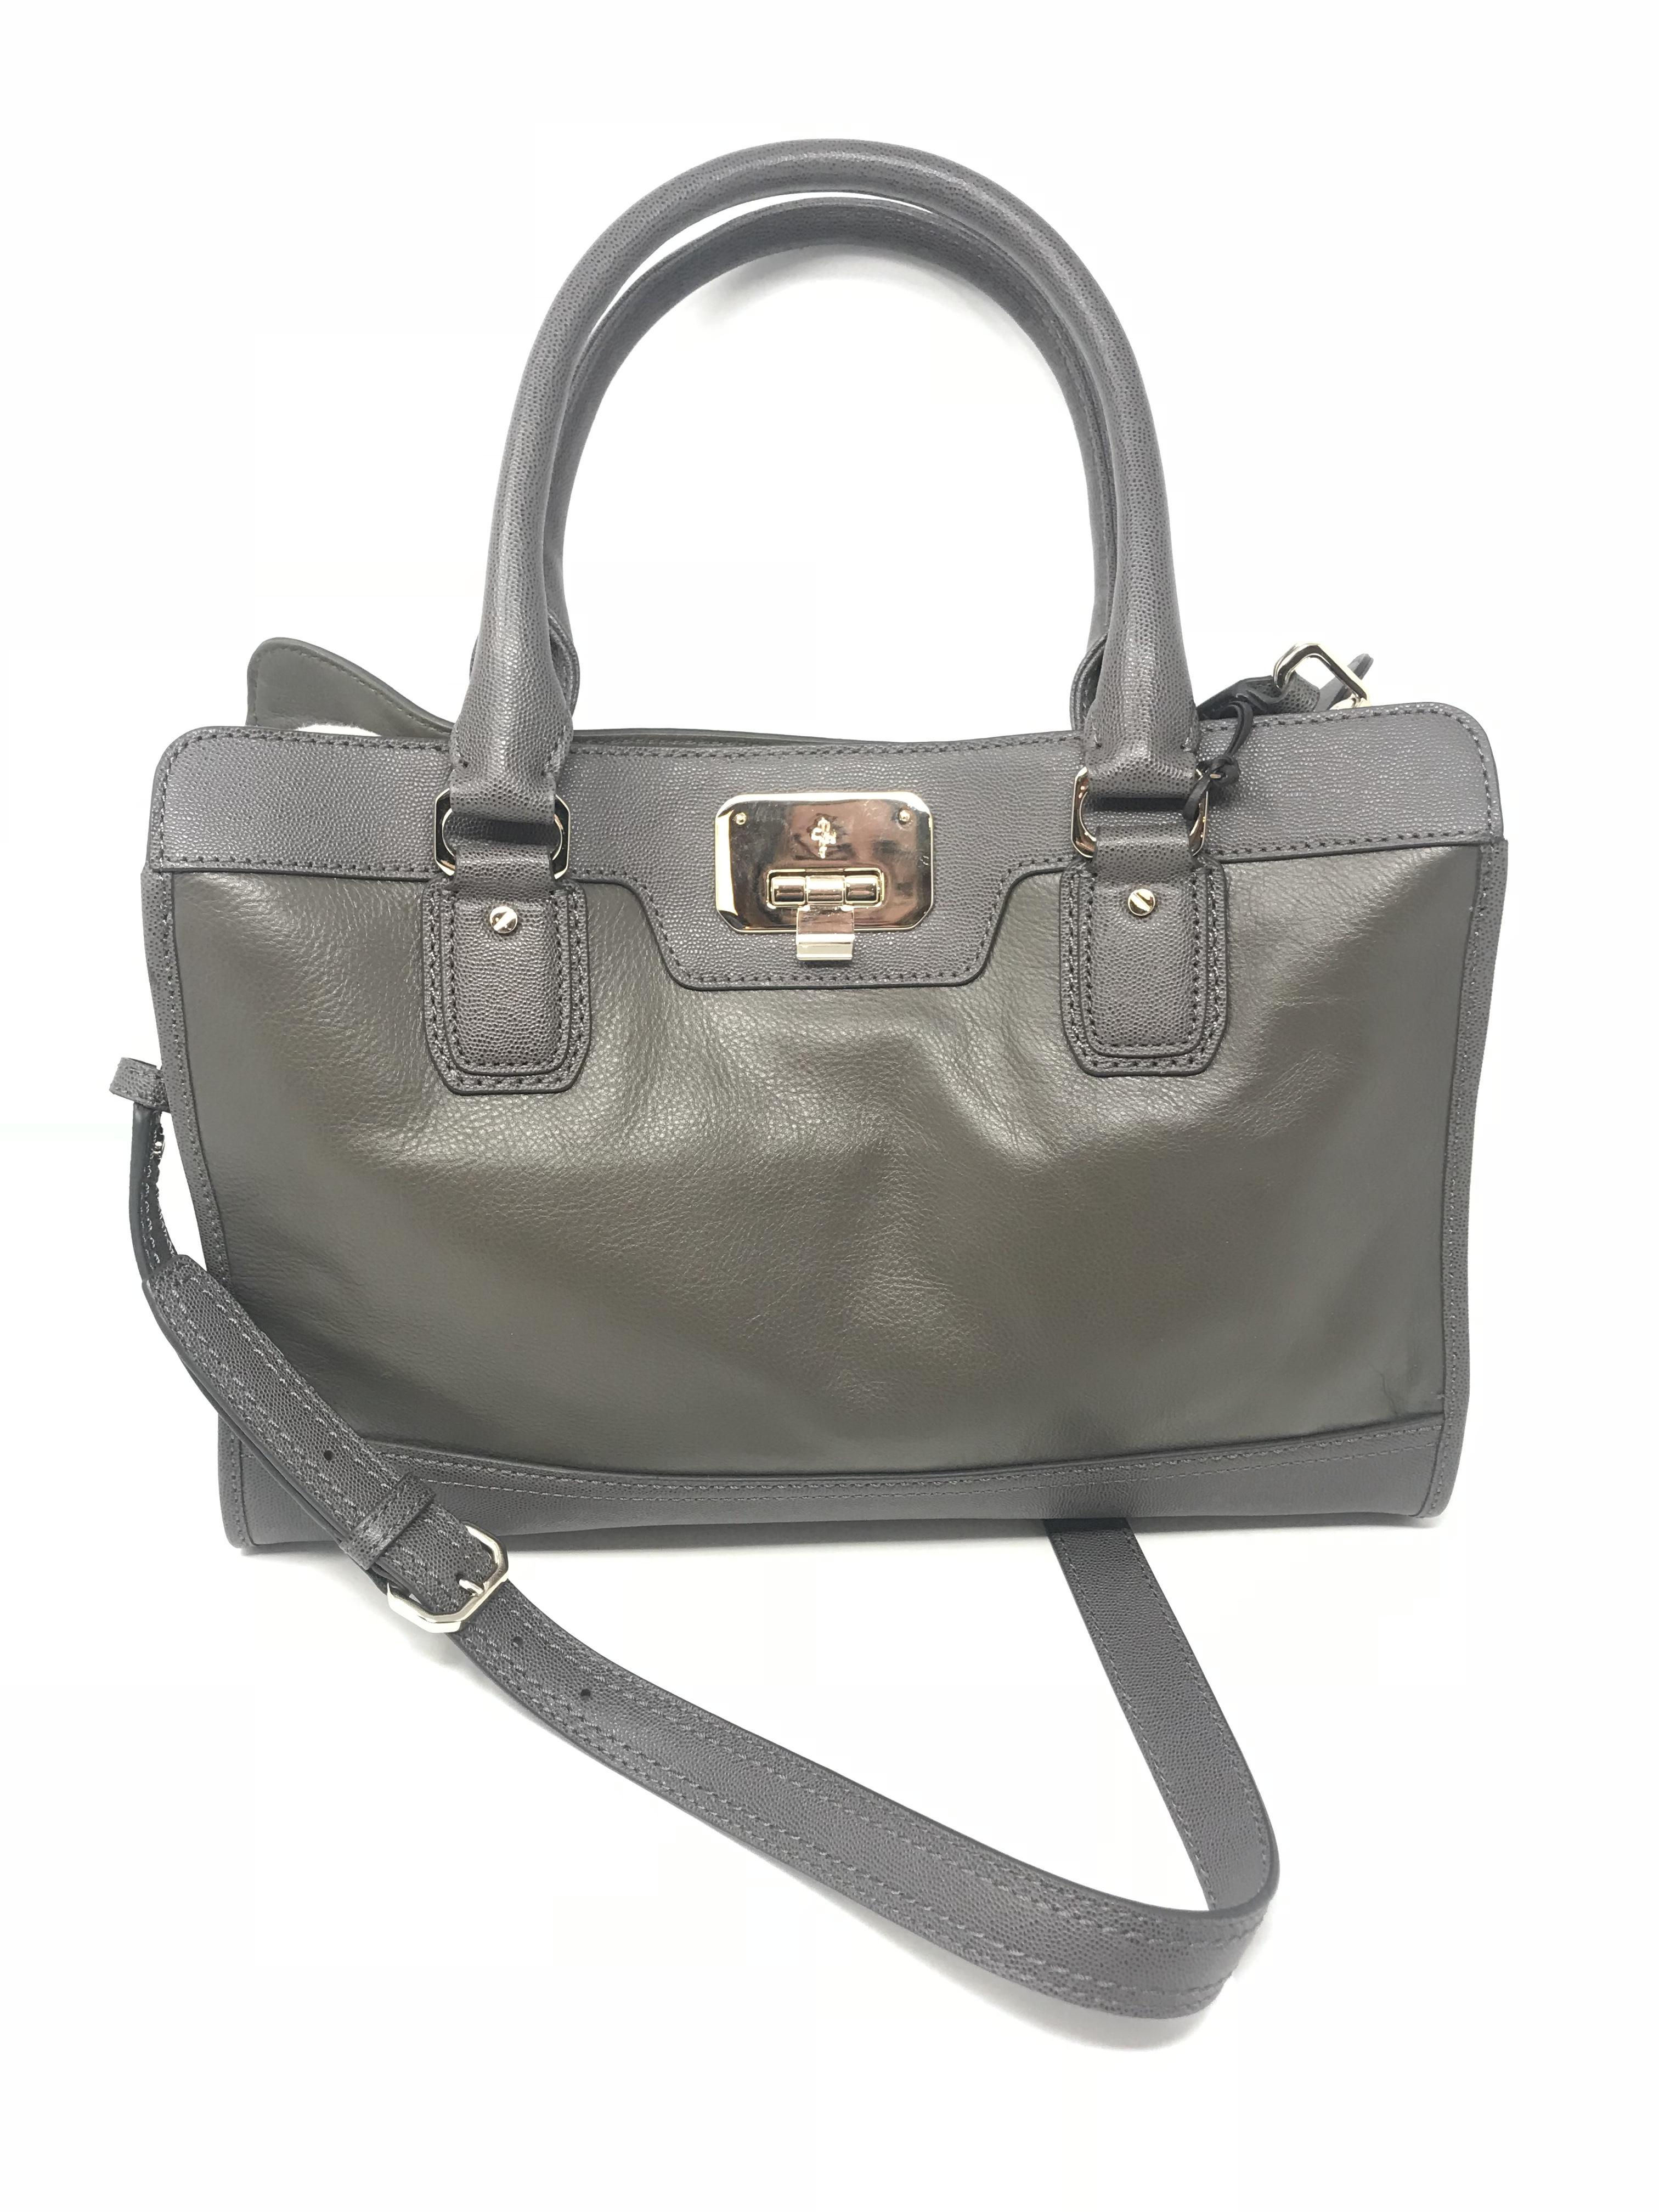 Cole Haan Accessories Price: $126.99